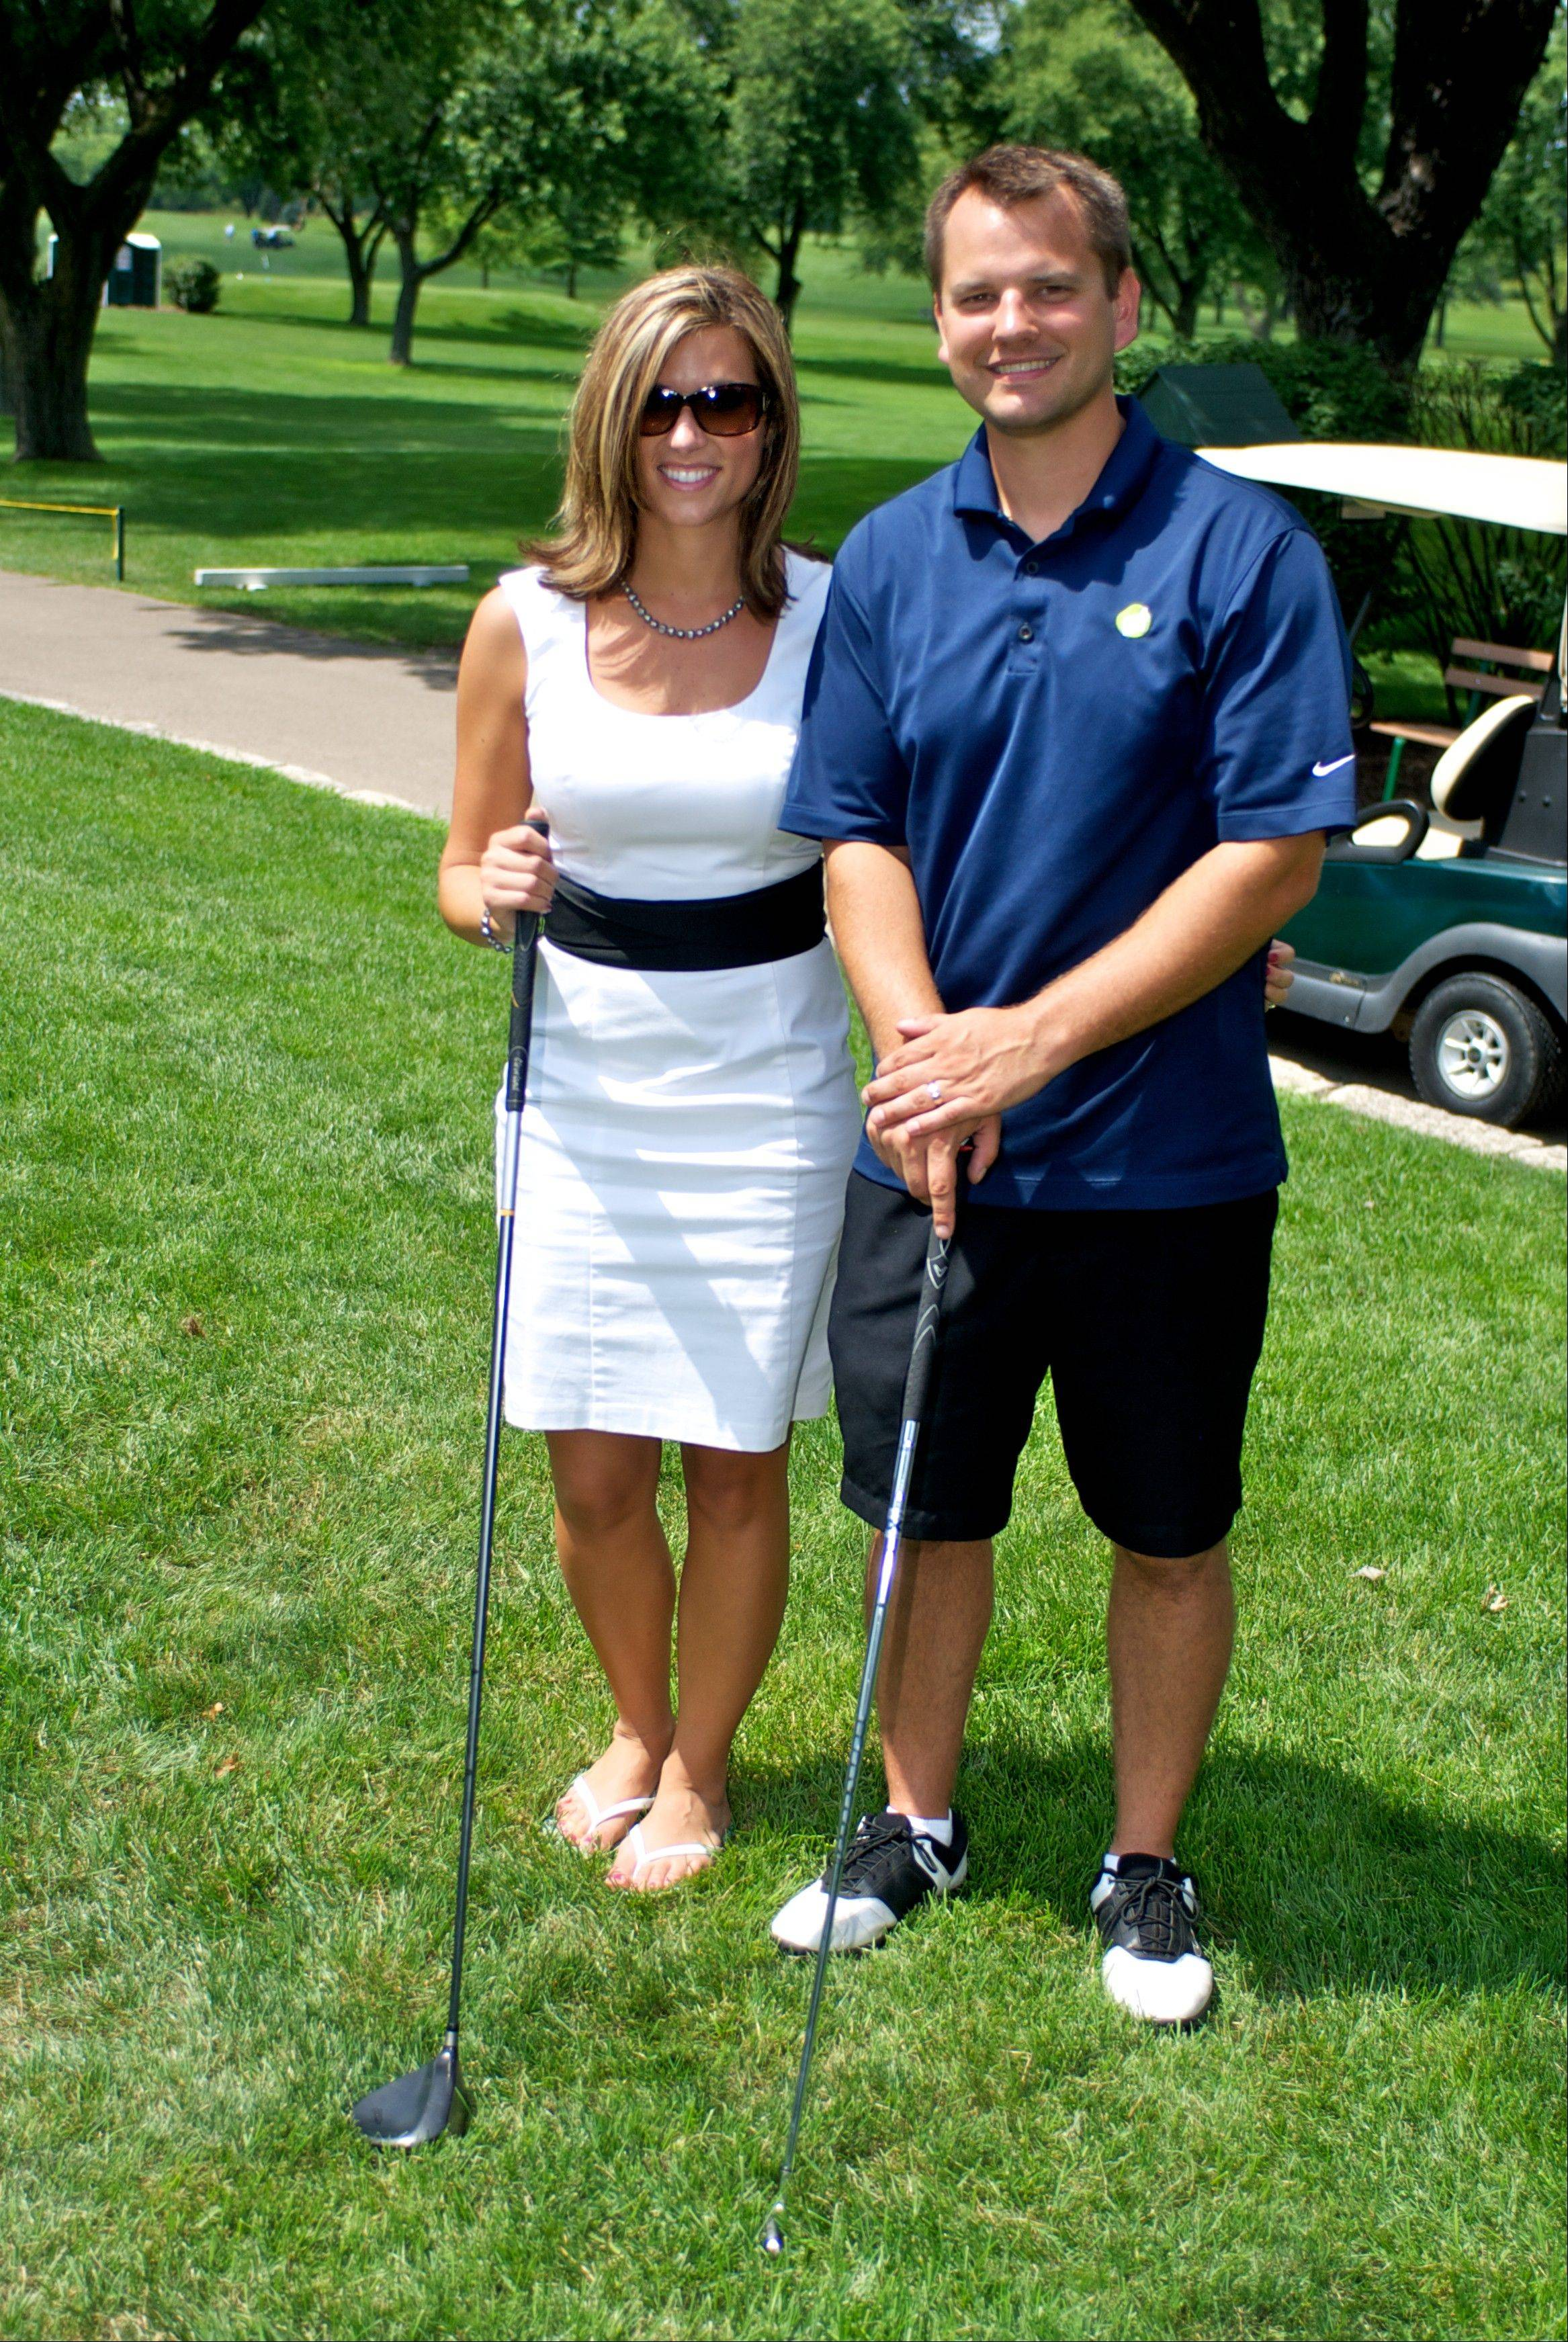 After fighting back cancer twice, Phil Zielke launched Phil�s Friends to provide spiritual support to cancer patients. With donations and money raised at fundraisers � like the annual golf outing Zielke hosts with his wife, Carrie � the group sends prayers and care packages to patients.